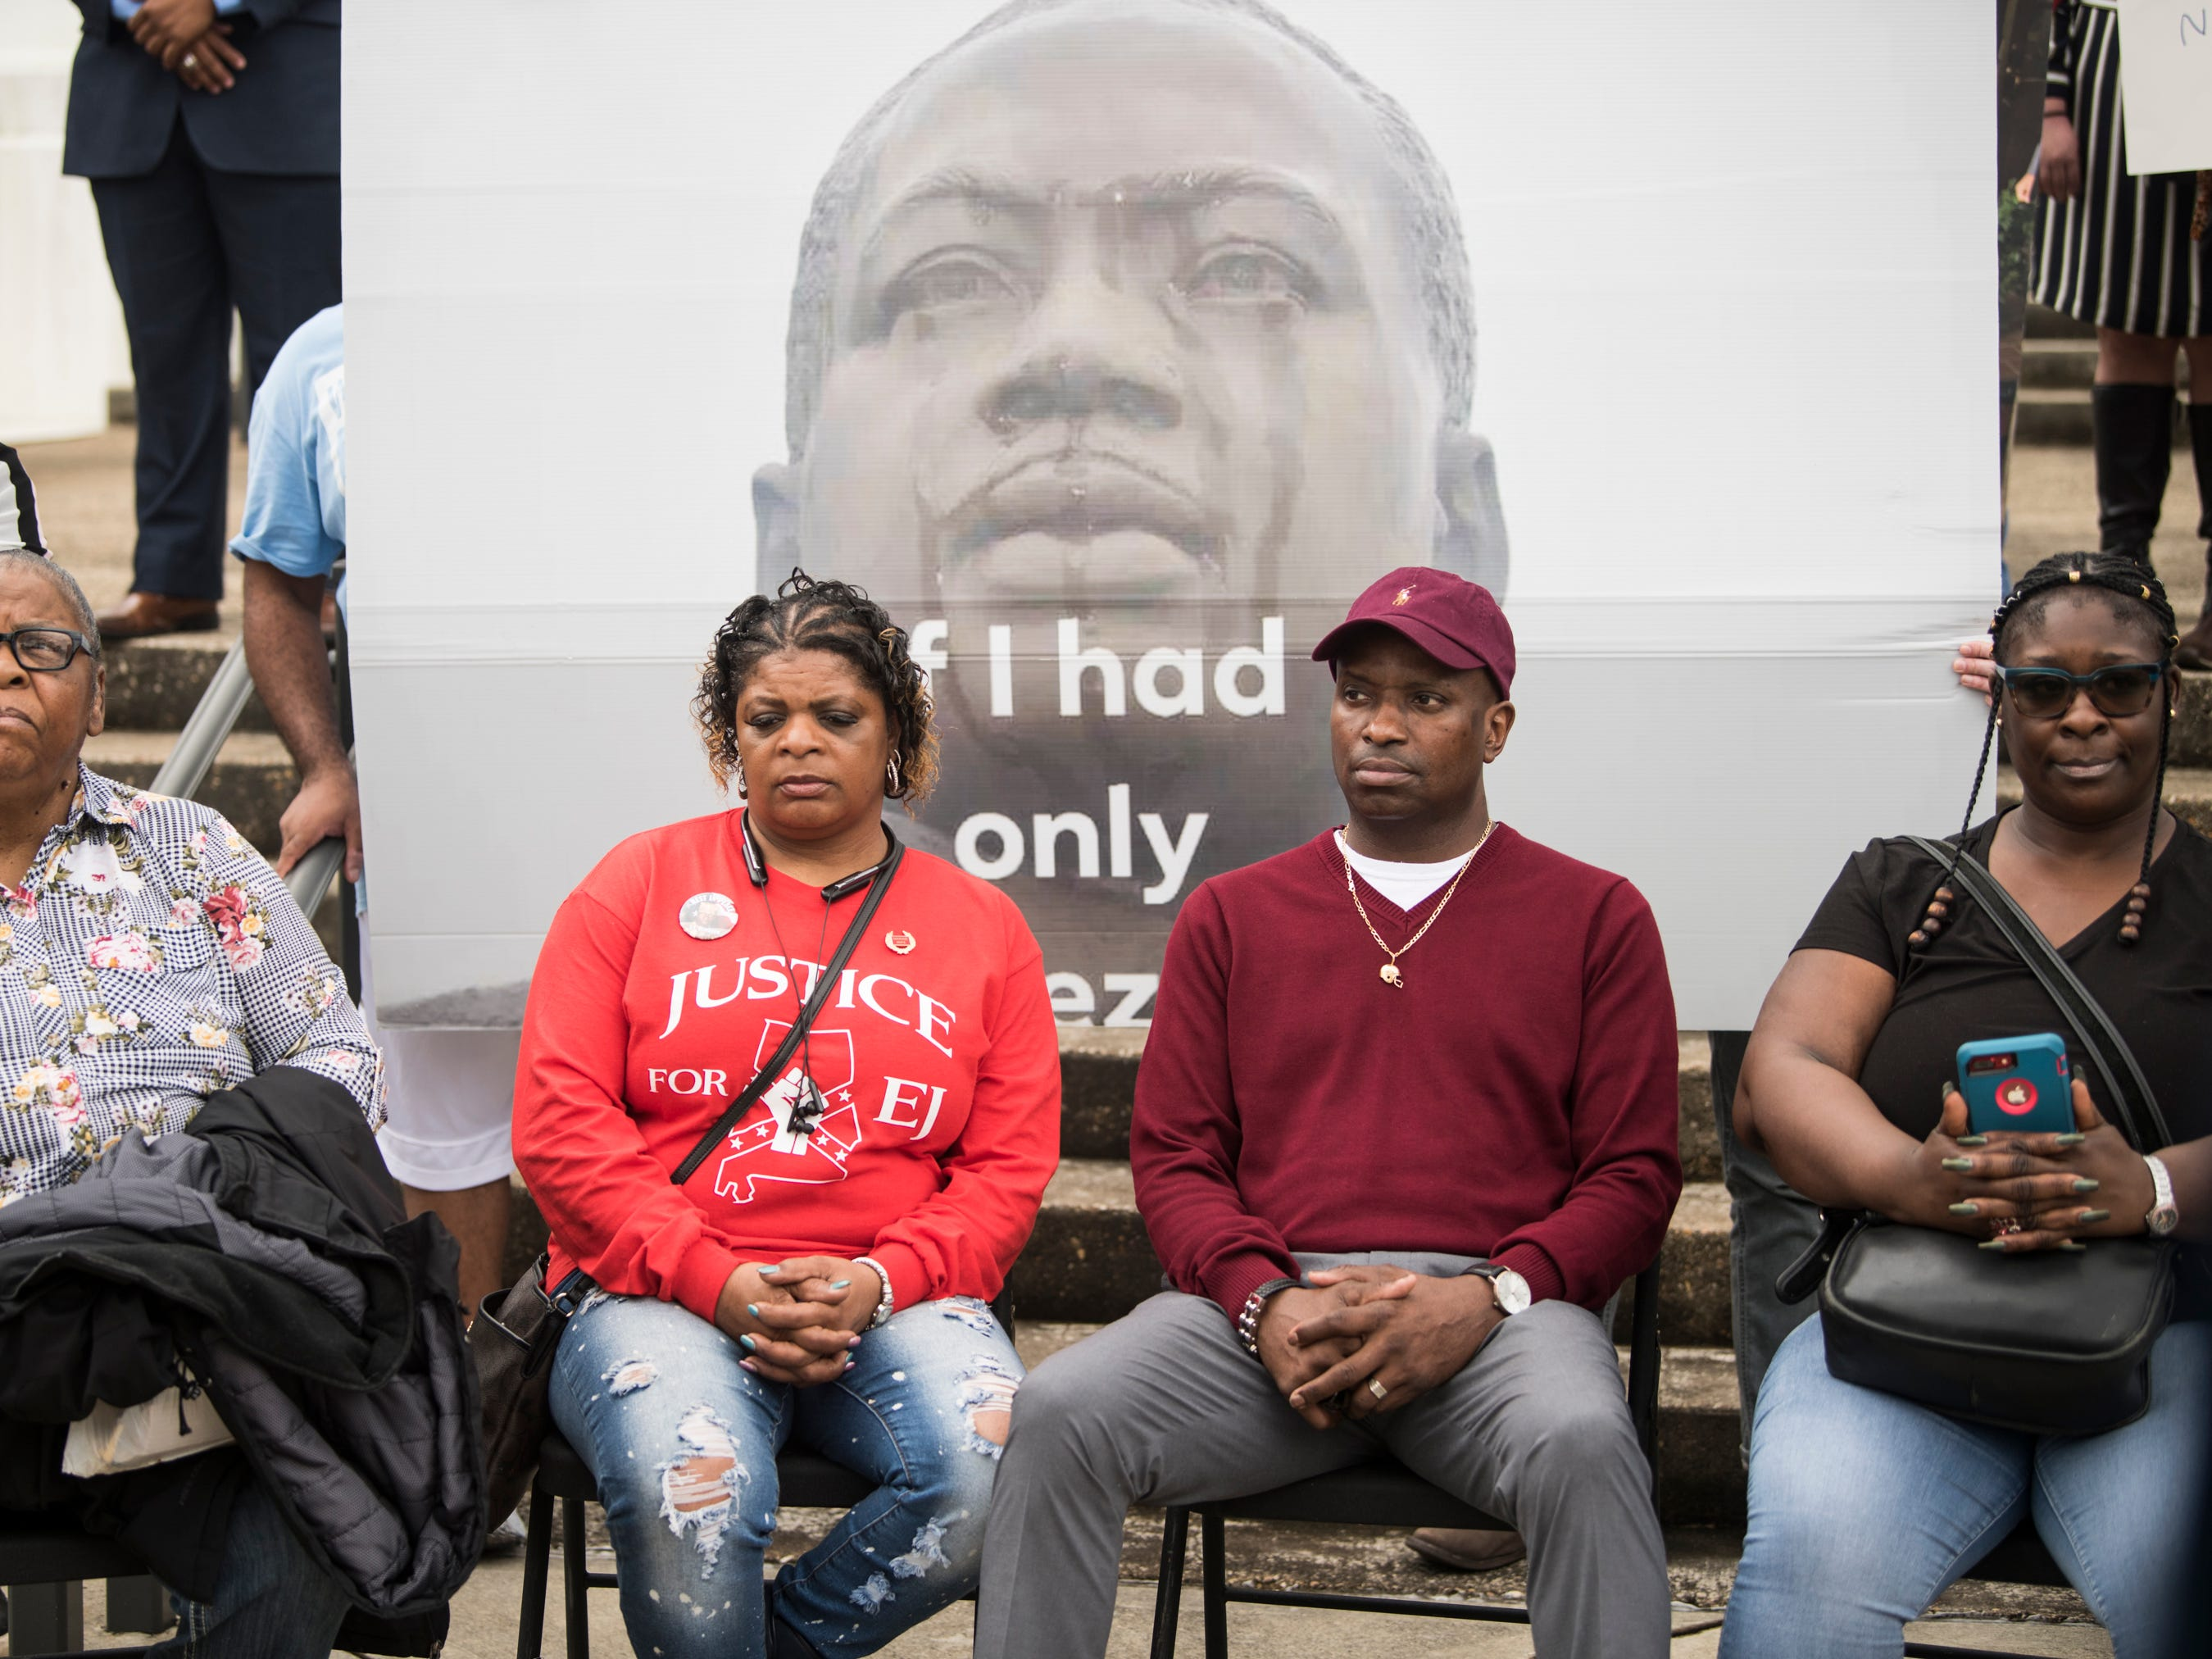 EJ Bradfords family from left, Althea Pipkins, grandmother, Cynthia Bradford, stepmother, Emantic Bradford Sr., father, and April Pipkins during a protest in Montgomery, Ala., on Wednesday, Feb. 6, 2019. EJ Bradford was shot and killed by police Nov. 22, 2018 in a Hoover, Ala. mall. Alabama Attorney General Steve Marshall announced Tuesday there would be no charges filed against the officer involved in the shooting.